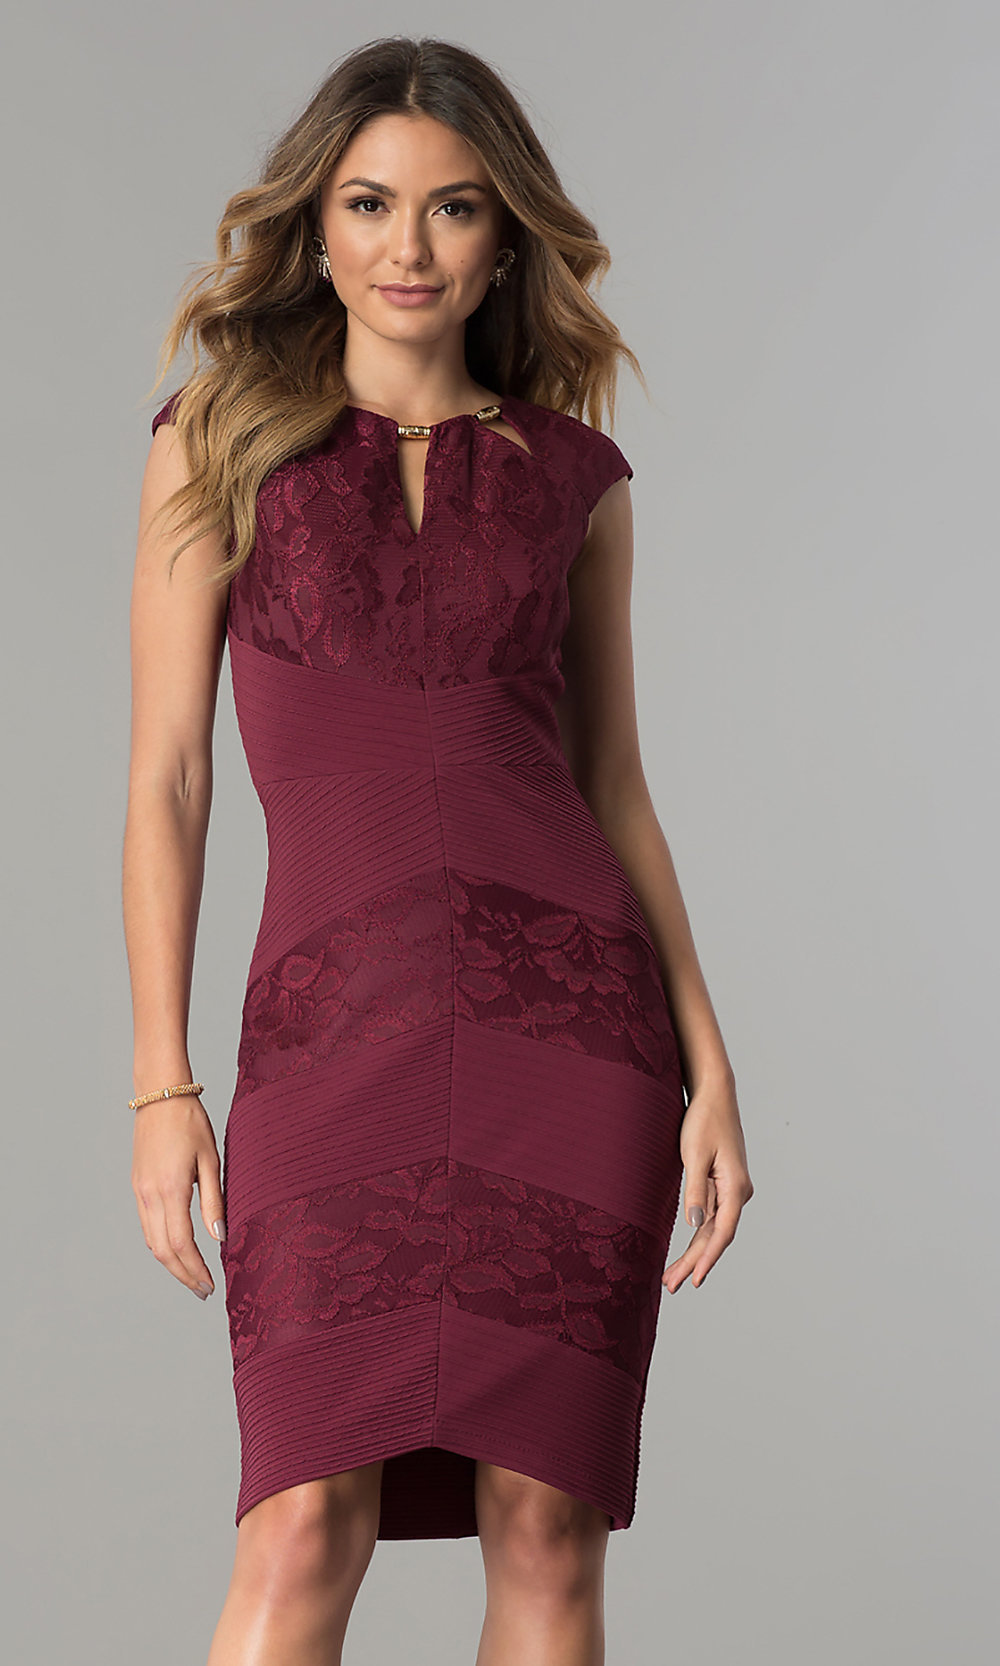 4a804094abe3 Image of wine red jersey and lace short wedding-guest dress. Style  SG. Tap  to expand